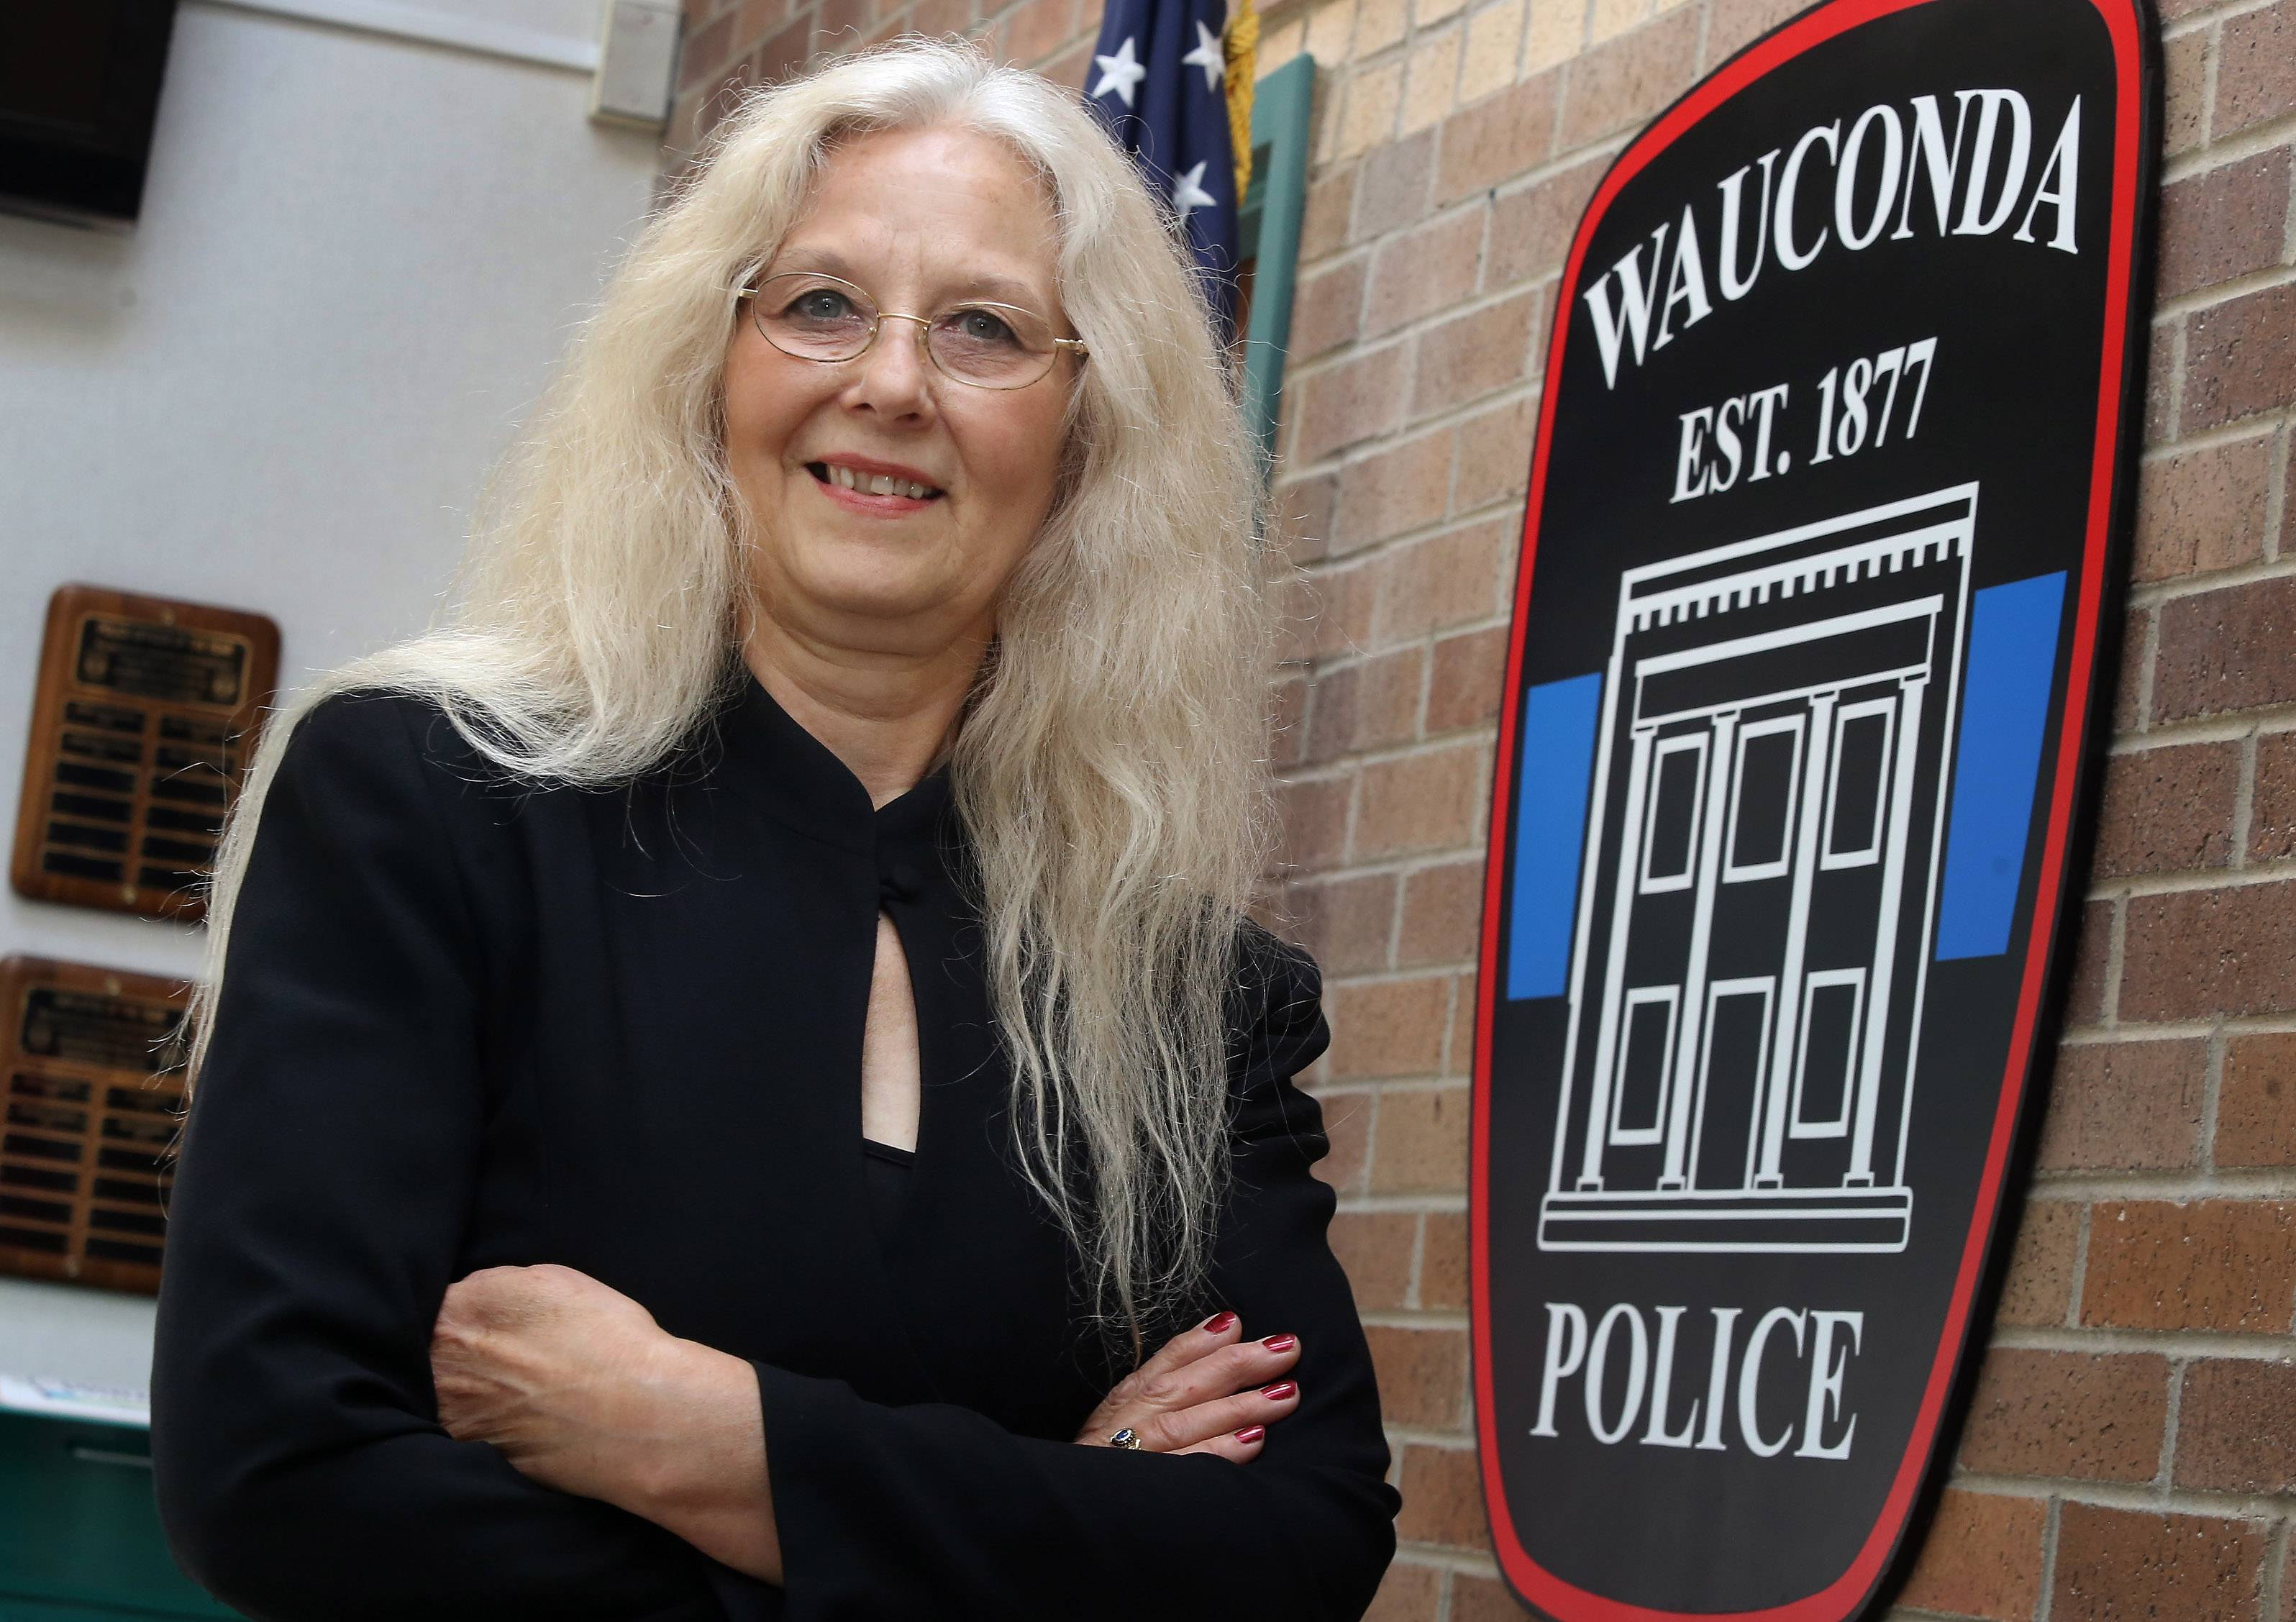 Wauconda police Executive Assistant Deborah Gompertz is celebrating her 40-year anniversary with the department. She started as a dispatcher in June 1974.